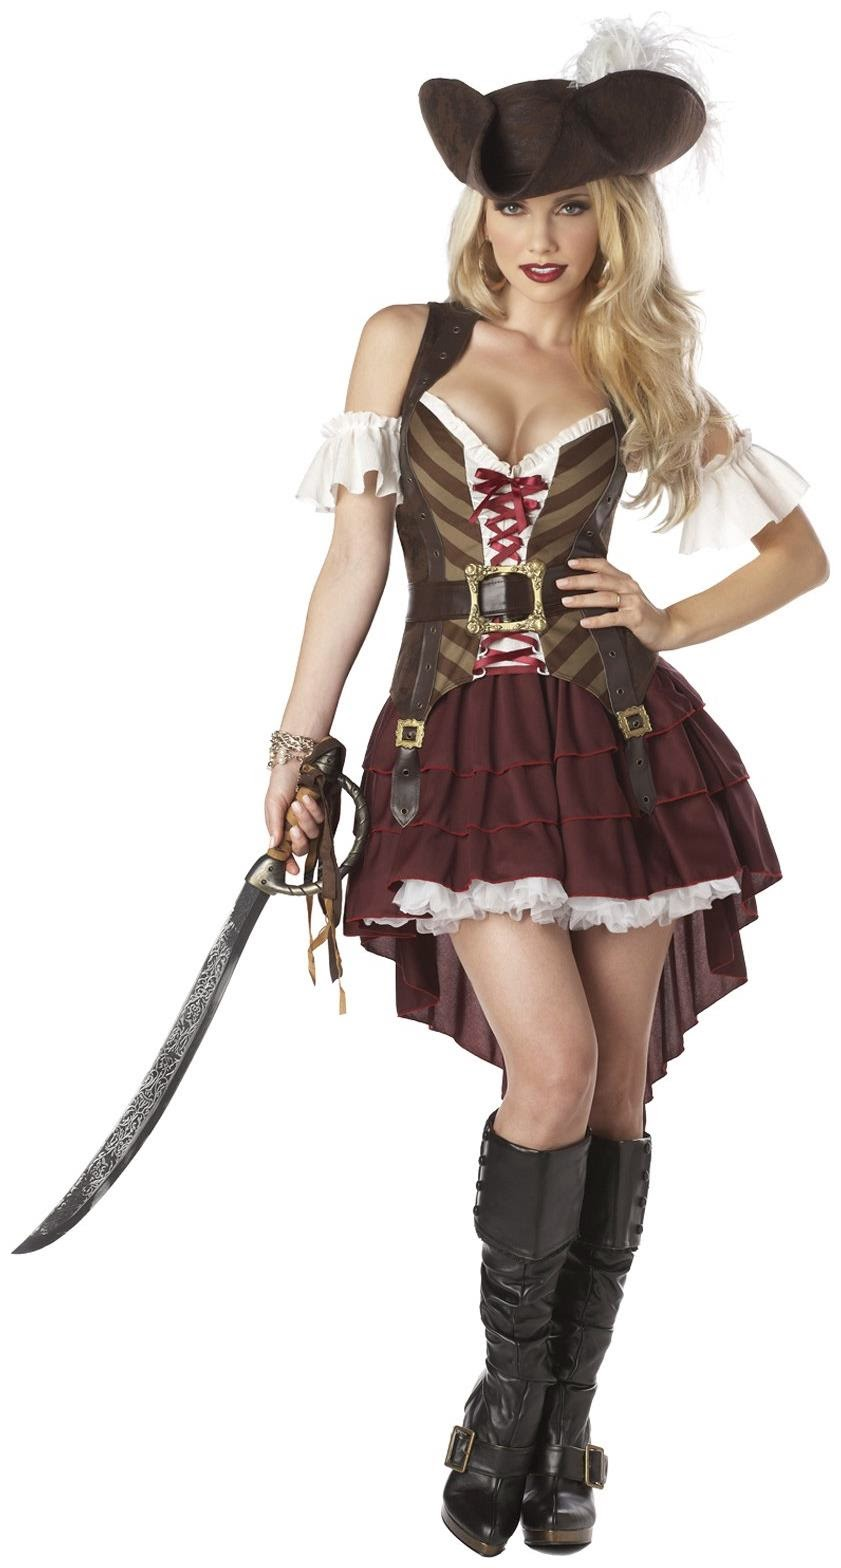 Pirate Festival: Hollywood Swashbuckler Pirate Costume Ideas for Women